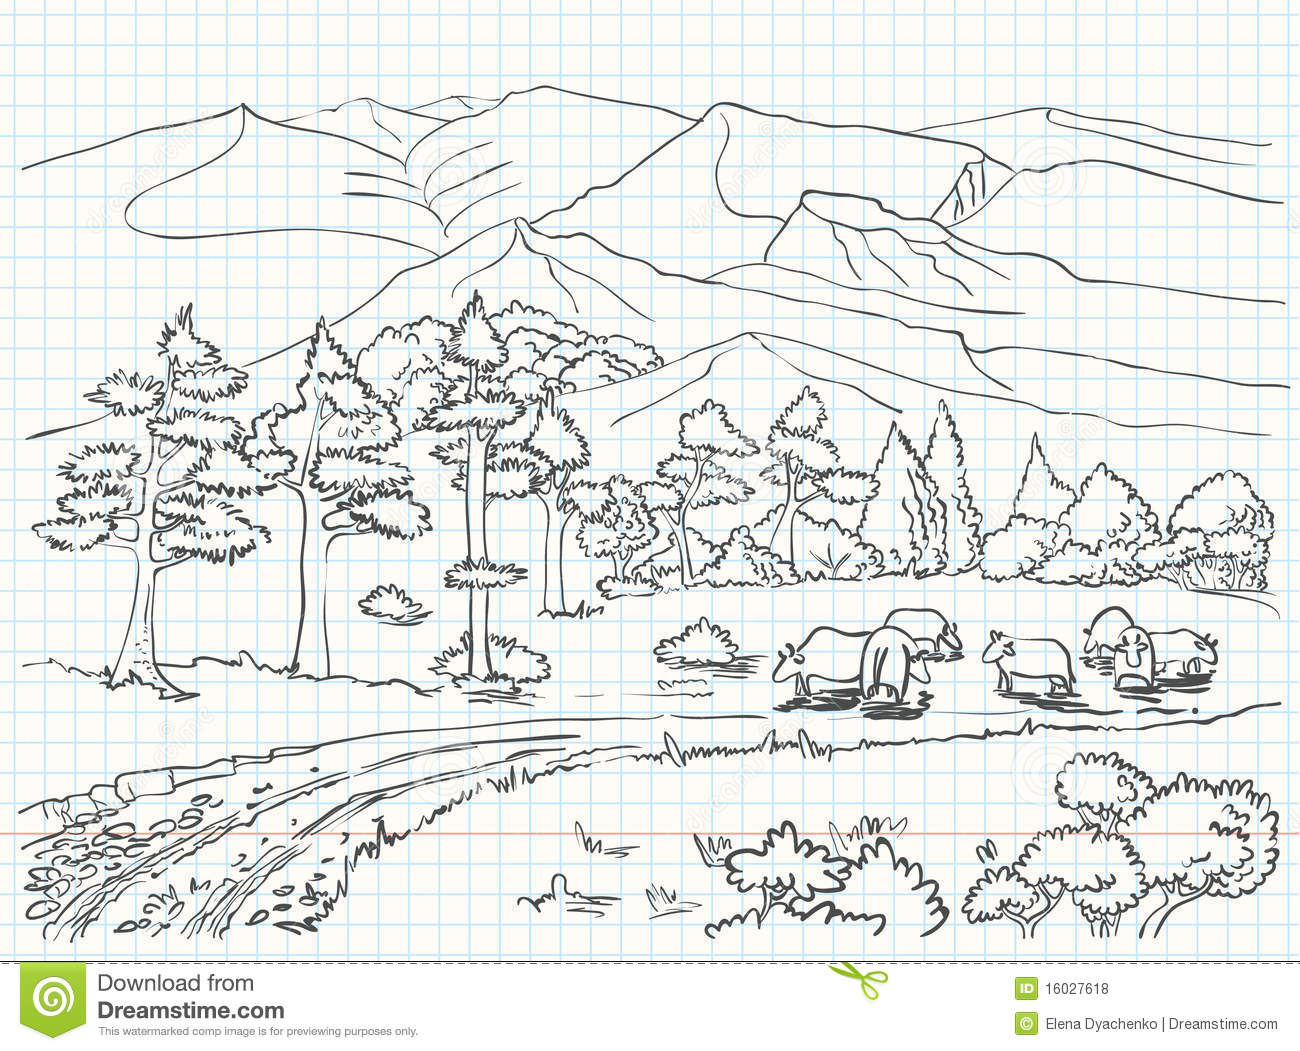 Stock Photos Hand Drawn Wreaths Set Sketch Traditional Winning Laurel Branch Isolated Vector Illustration Image39869763 likewise Feb297257bdc1b9c moreover Residencial Grading Solution together with 114094579 in addition Home plans floorplan. on farmhouse plans